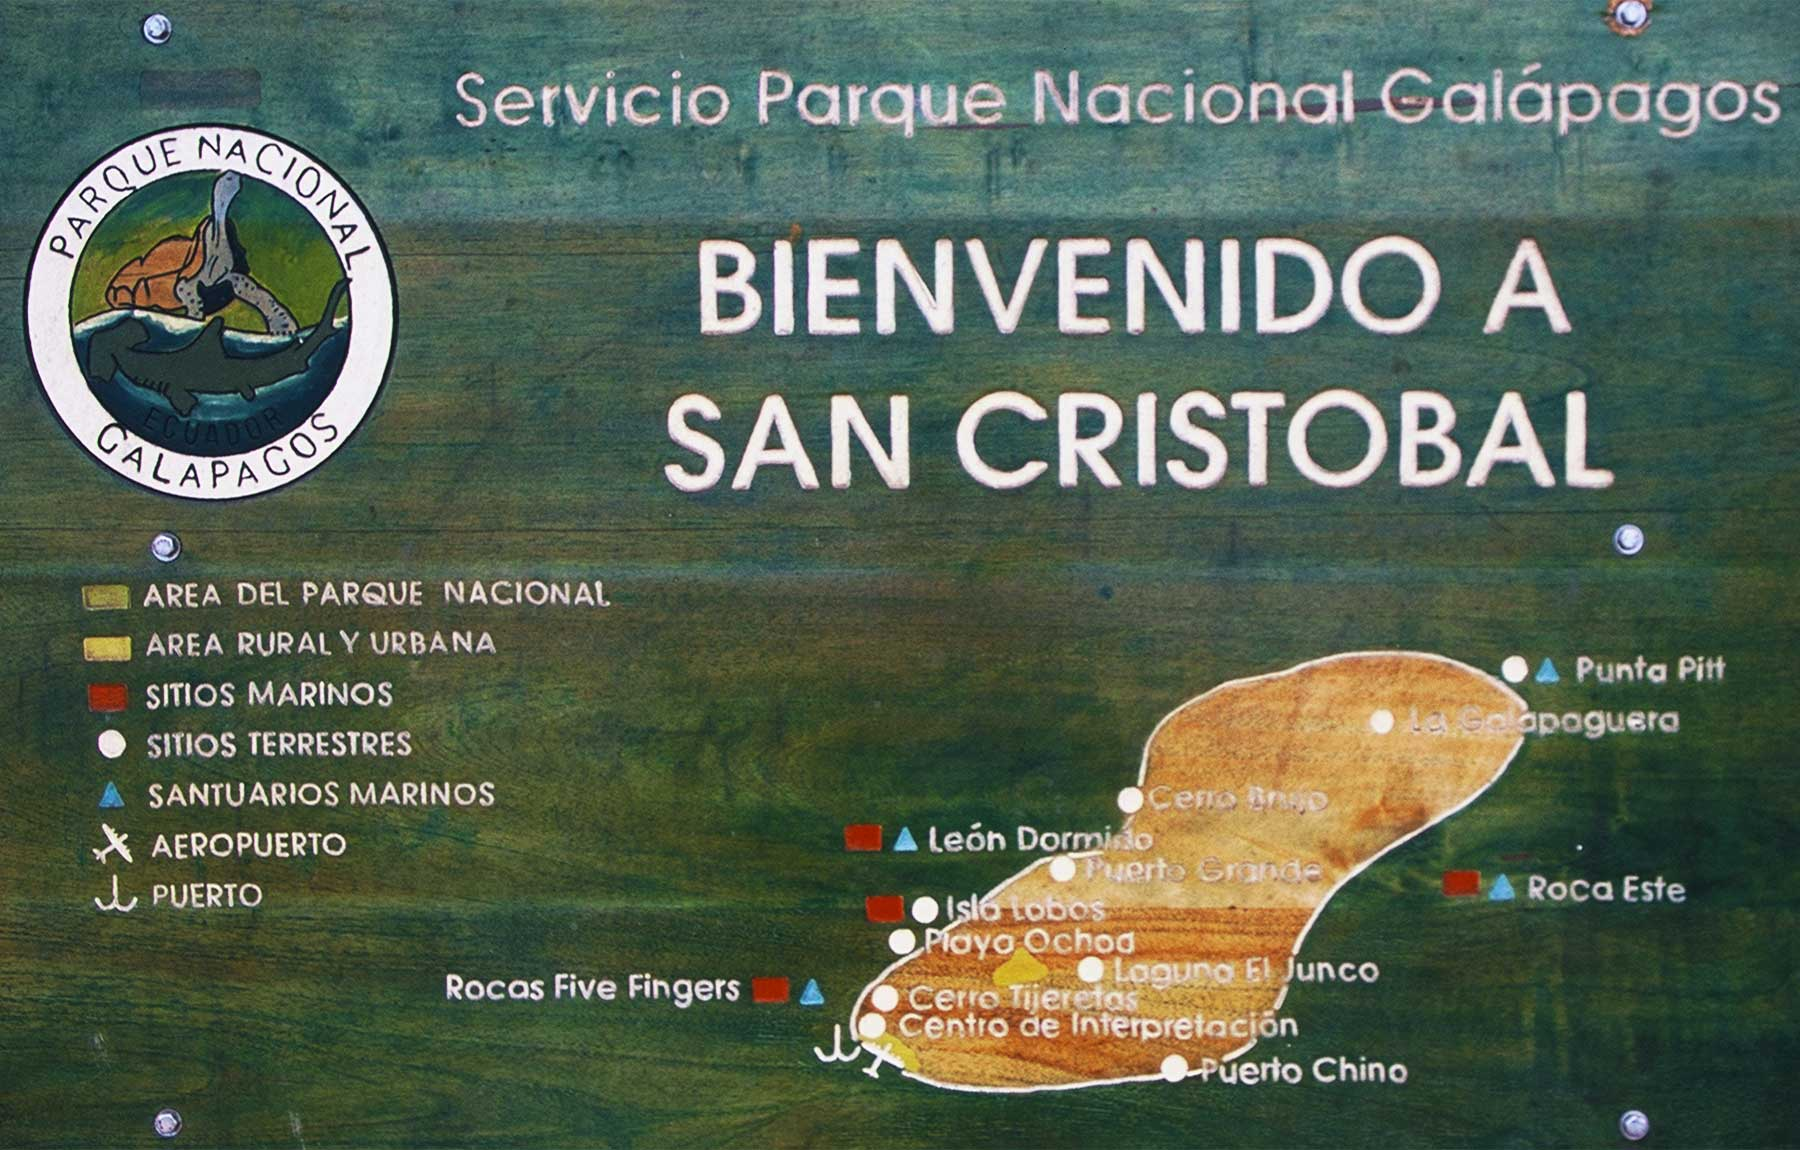 San Cristobal |  Galapagos National Park Headquarters |  Steven A Martin | Ecuador Research | Photo Journal